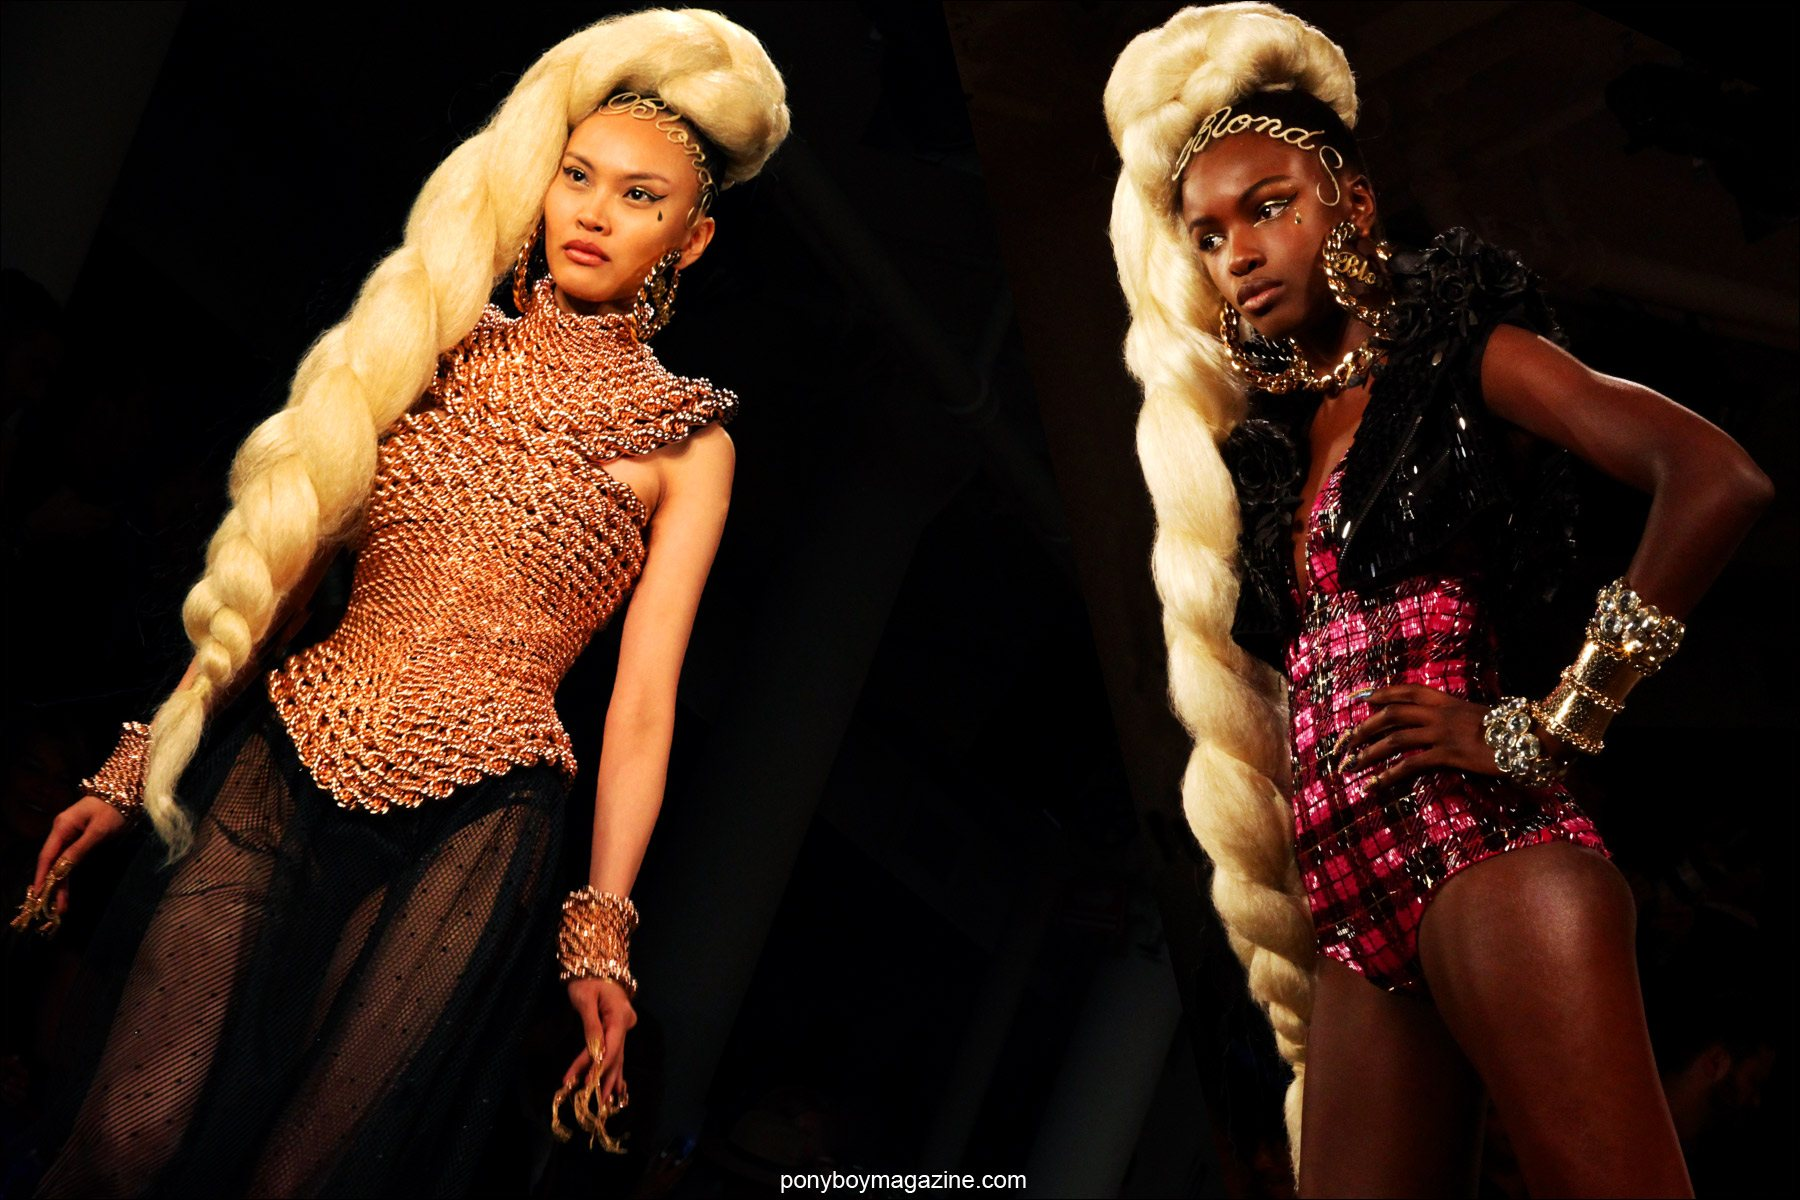 Over-the-top creations by The Blonds Spring/Summer 2015 collection. Photographed at New York's Milk Studios by Alexander Thompson for Ponyboy Magazine.